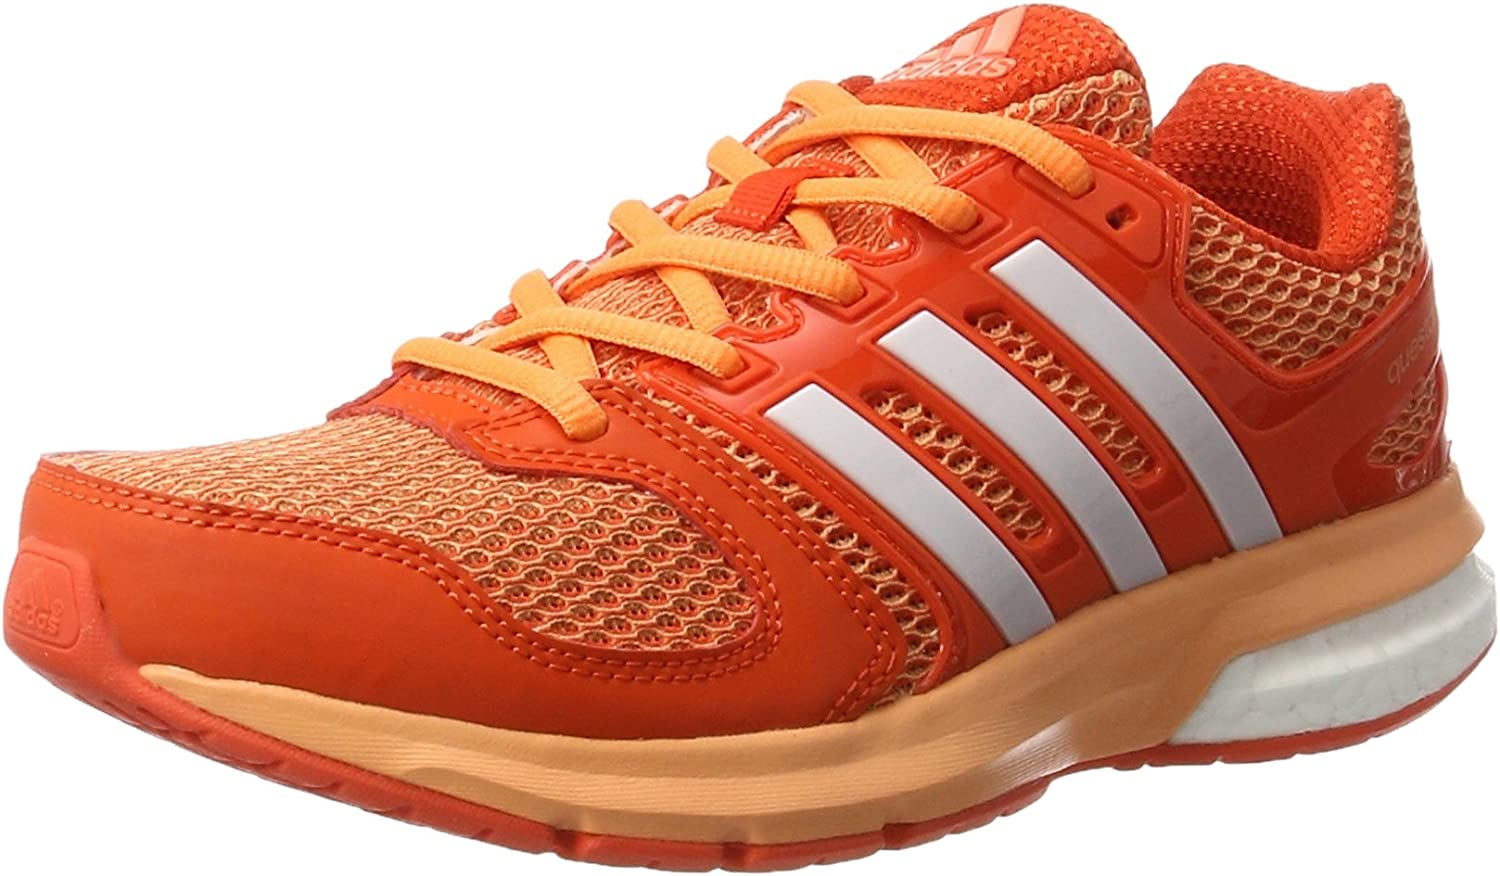 Adidas Questar Boost Womens Running Trainers Sneakers